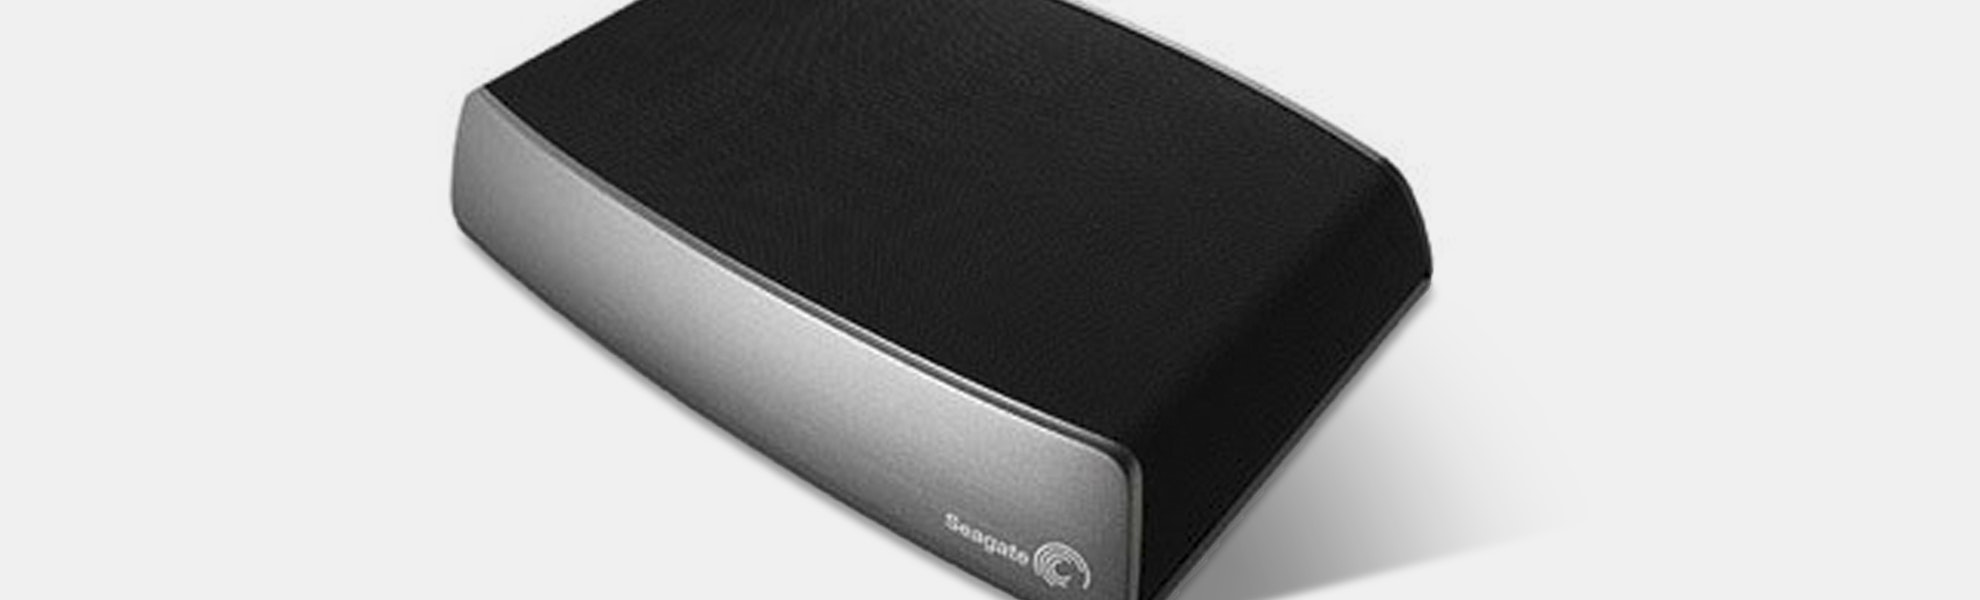 Seagate Central 3TB Personal Cloud Storage